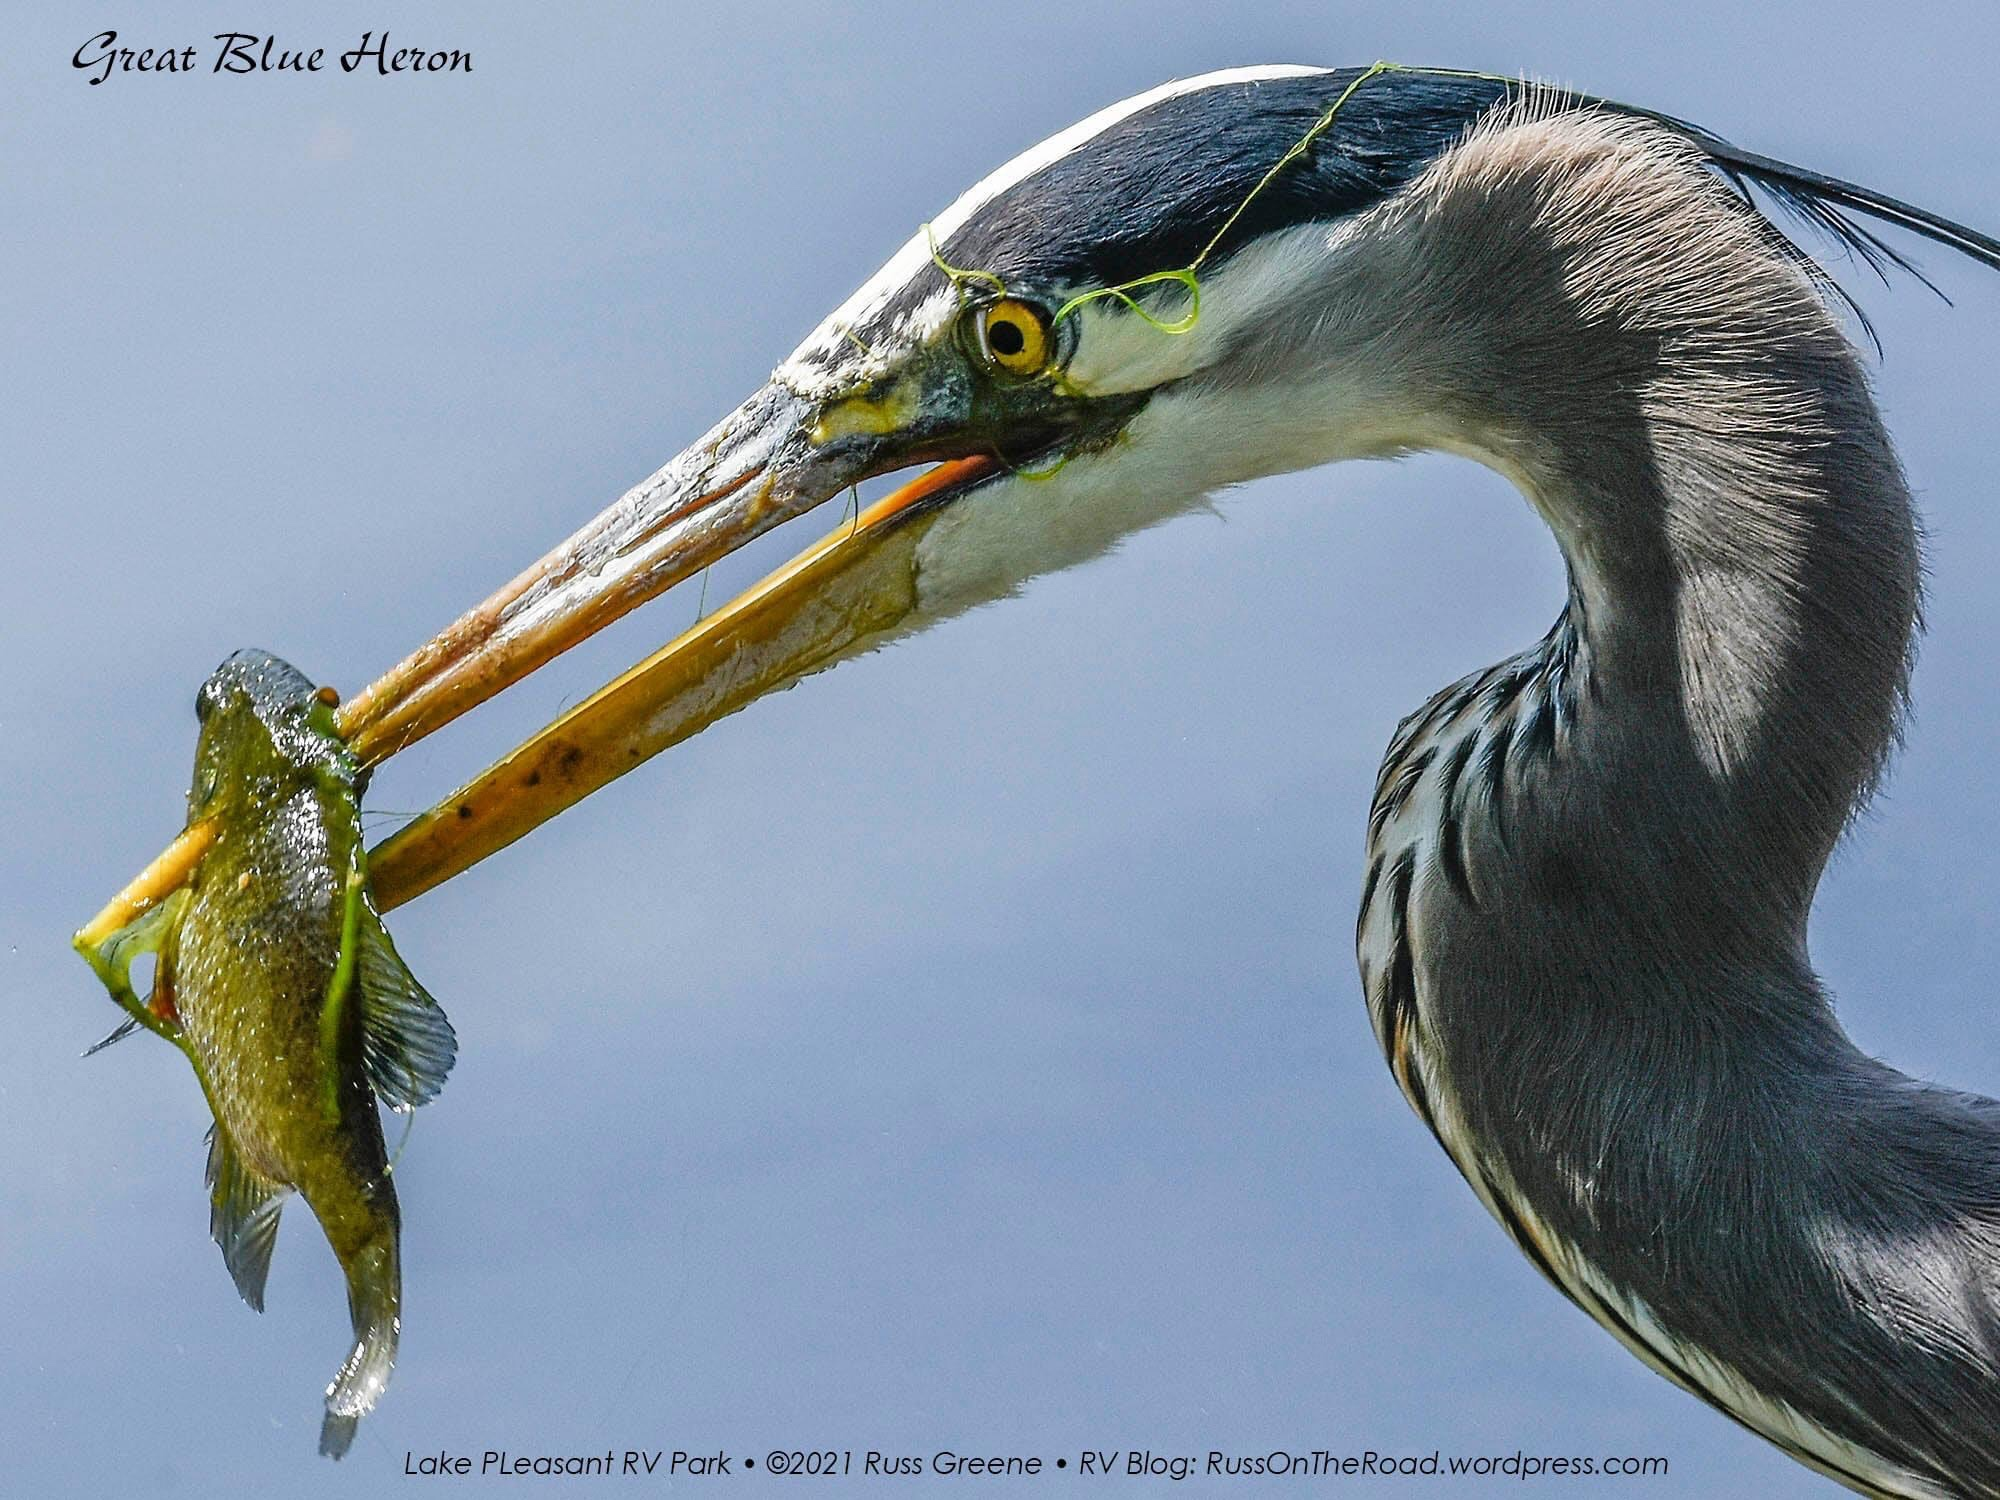 Great blue heron and prey.